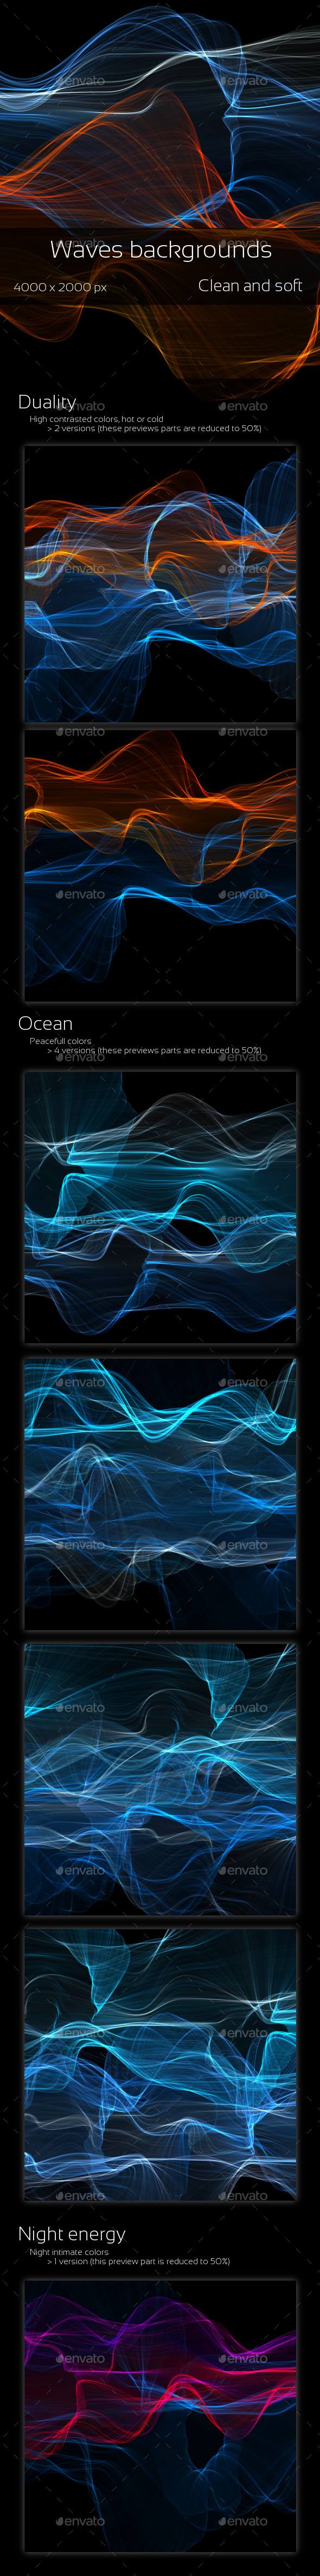 GraphicRiver Duality Waves pack 1 9100045